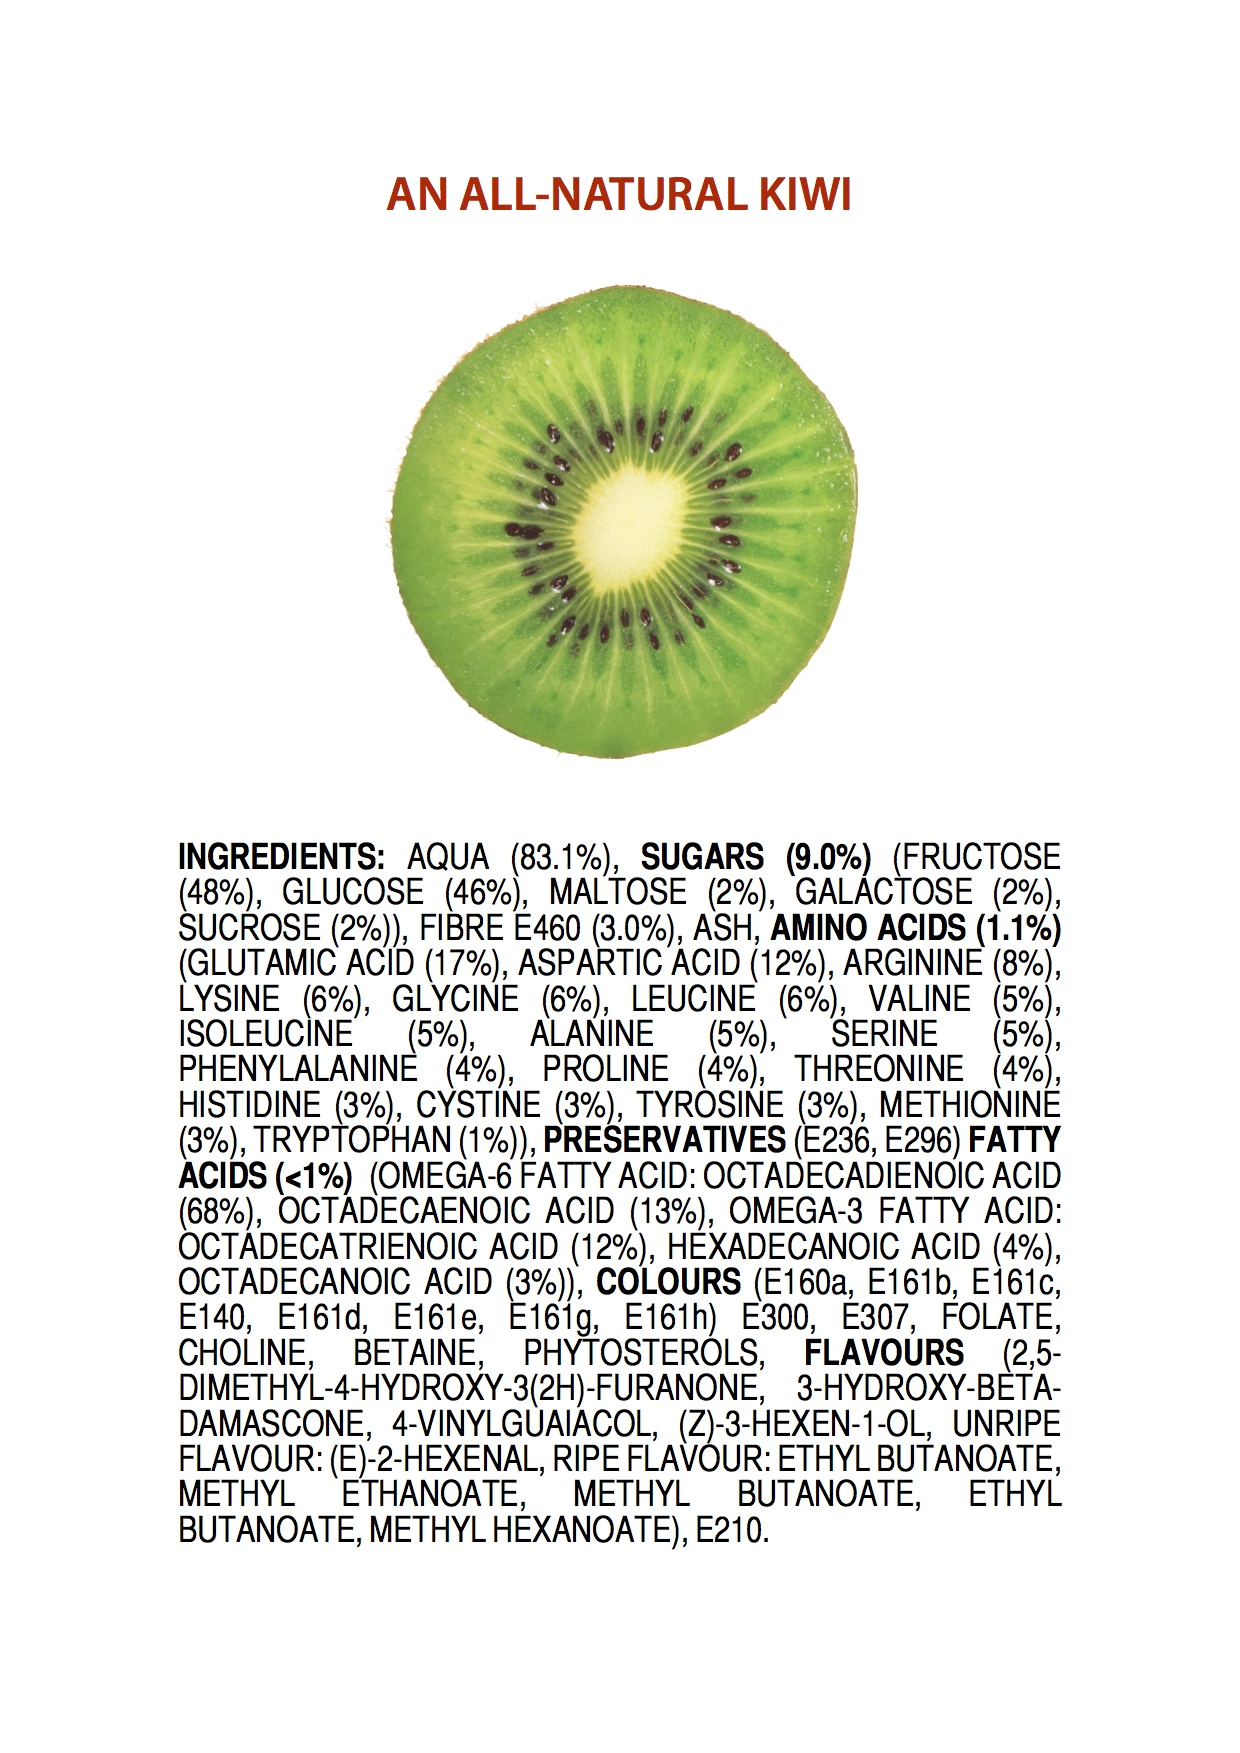 Tout est chimique... Ingredients-of-an-all-natural-kiwi-poster-2